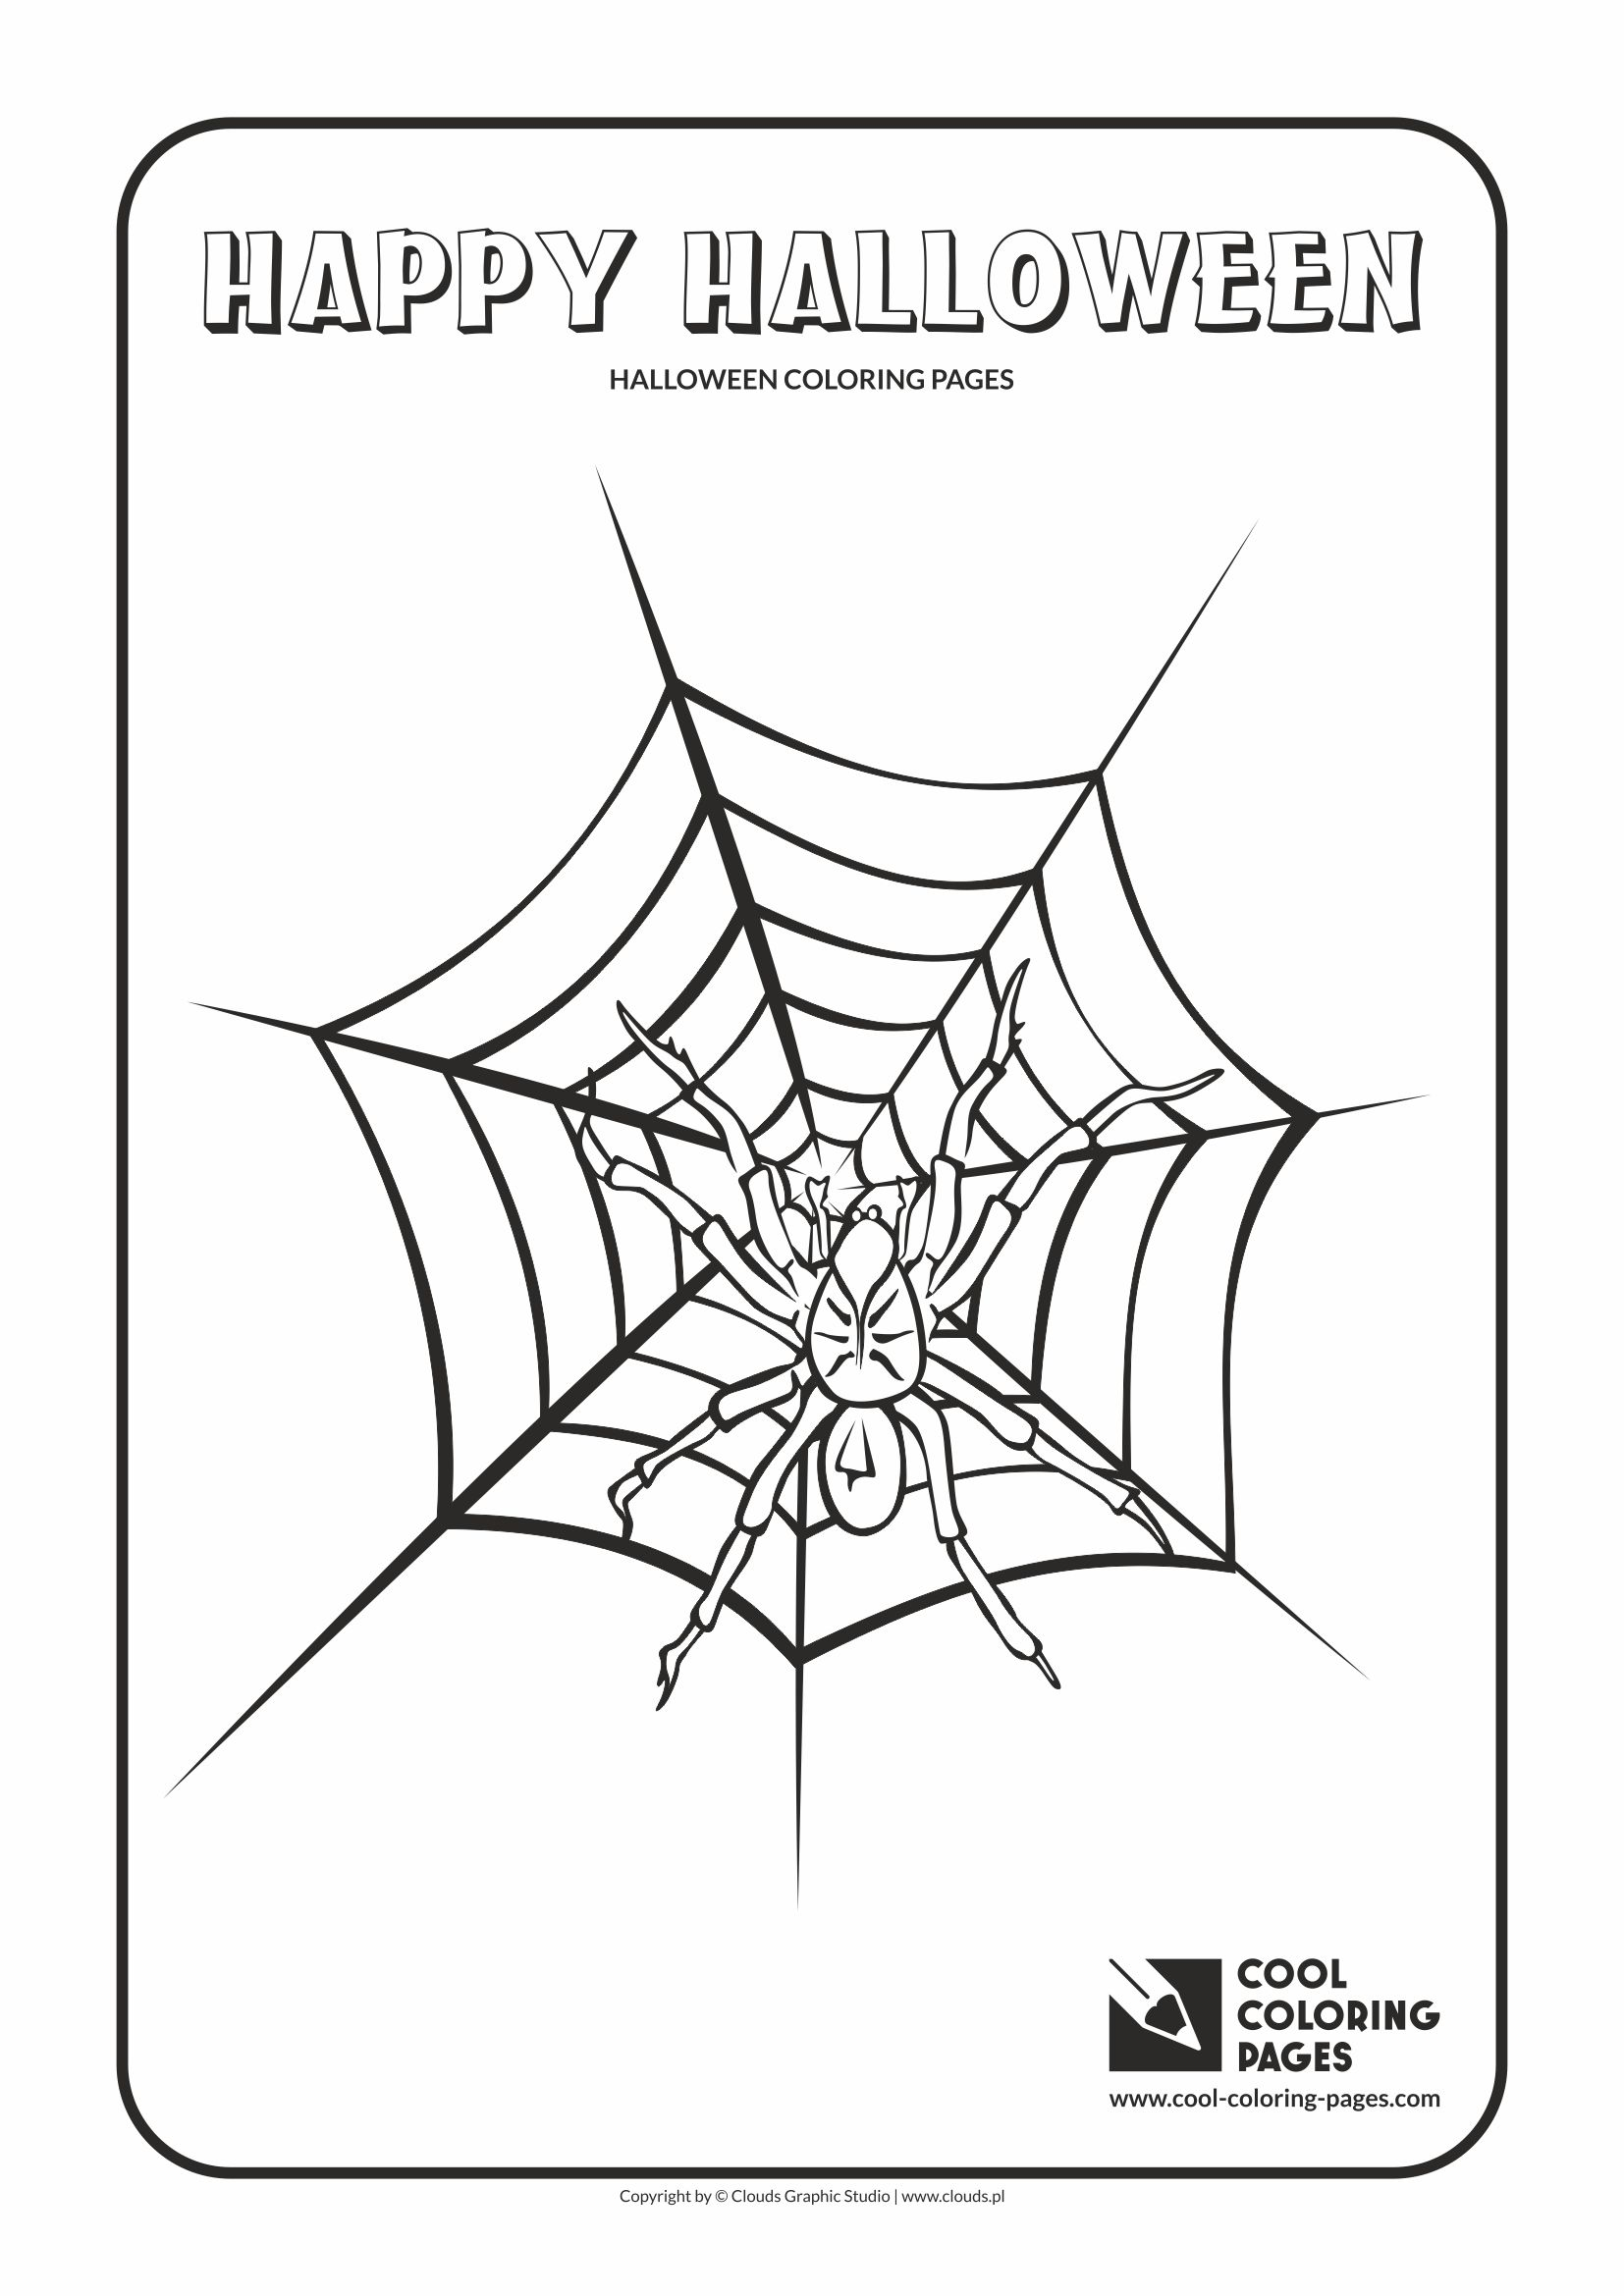 Cool Coloring Pages Halloween